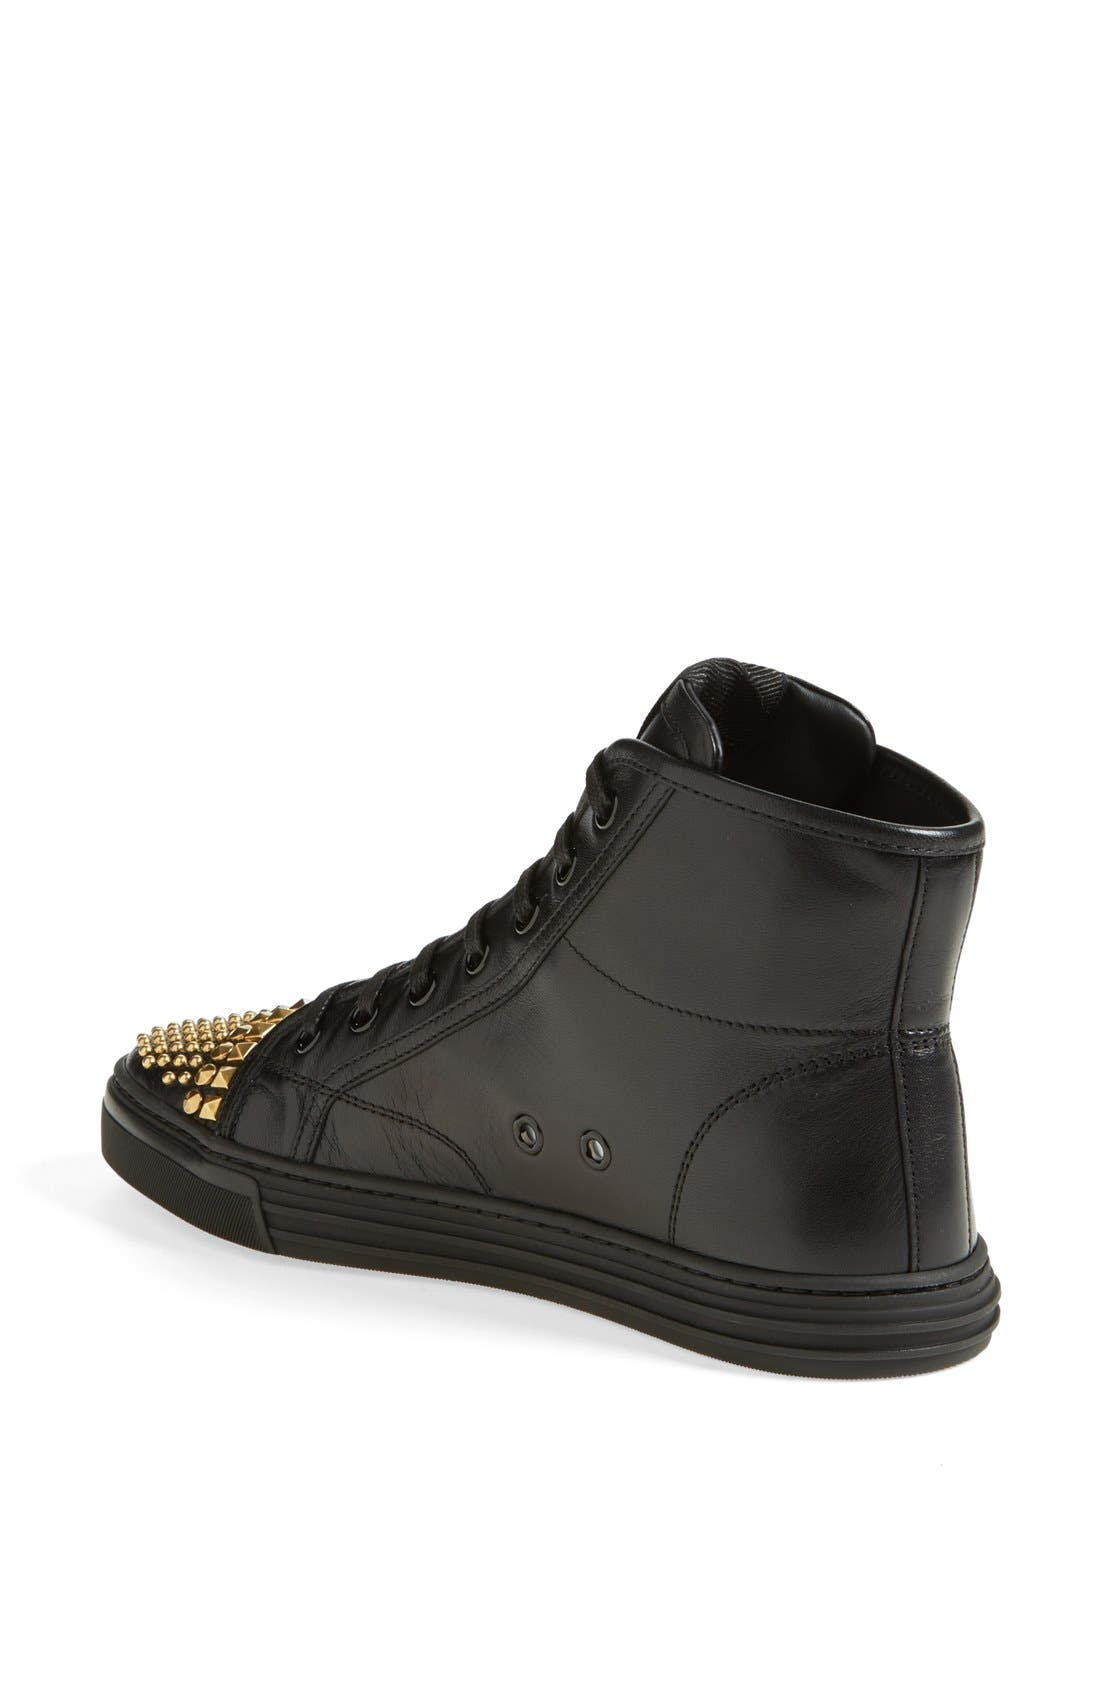 Alternate Image 2  - Gucci 'California' Studded Sneaker (Women)